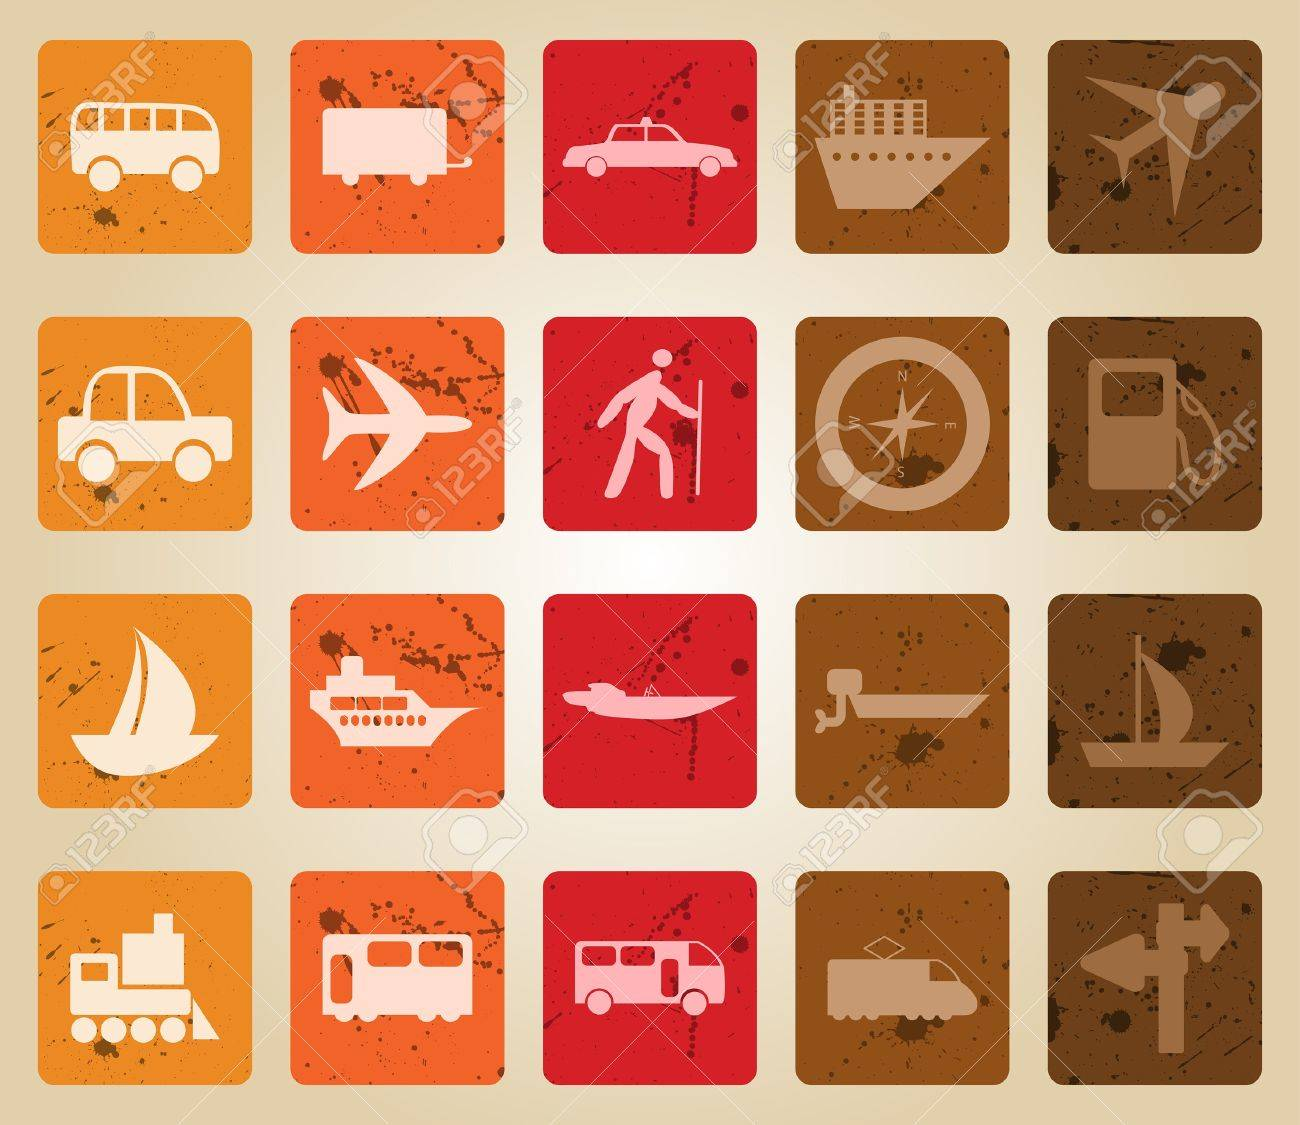 Transportation set of different   web icons. Retro style. Stock Vector - 7763743